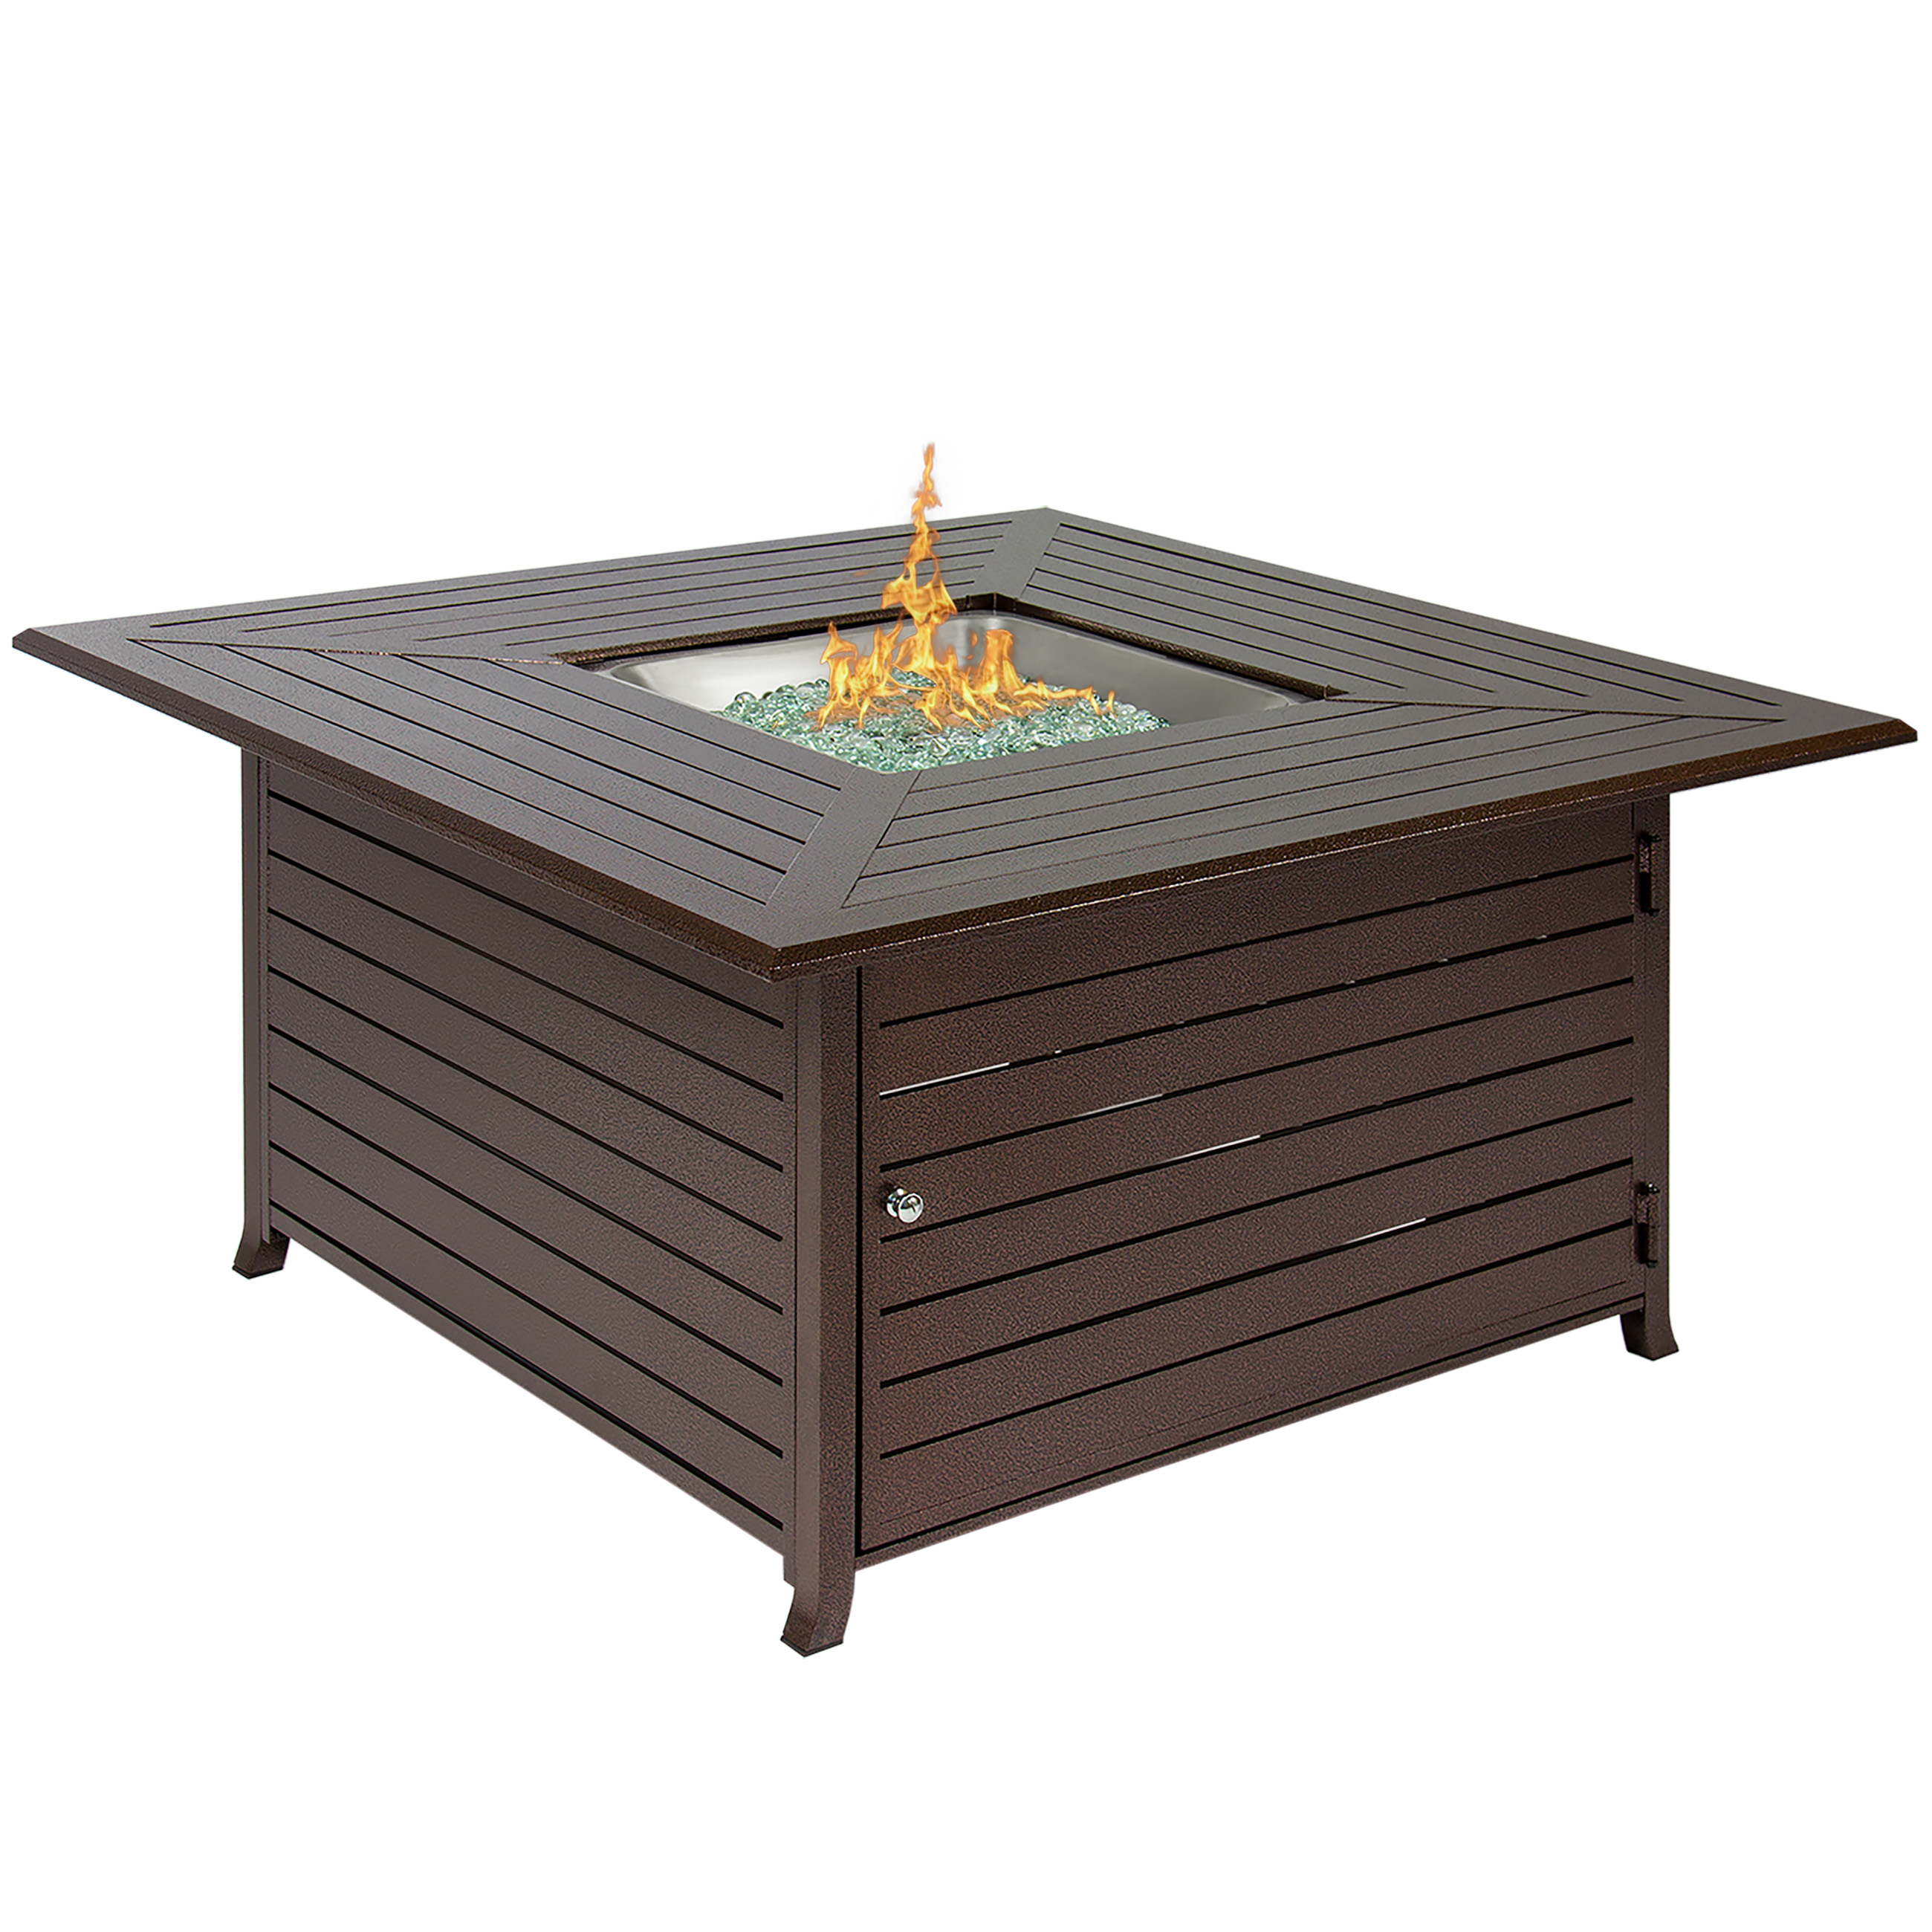 outdoor fire table. Best Choice Products Extruded Aluminum Gas Outdoor Fire Pit Table With Cover